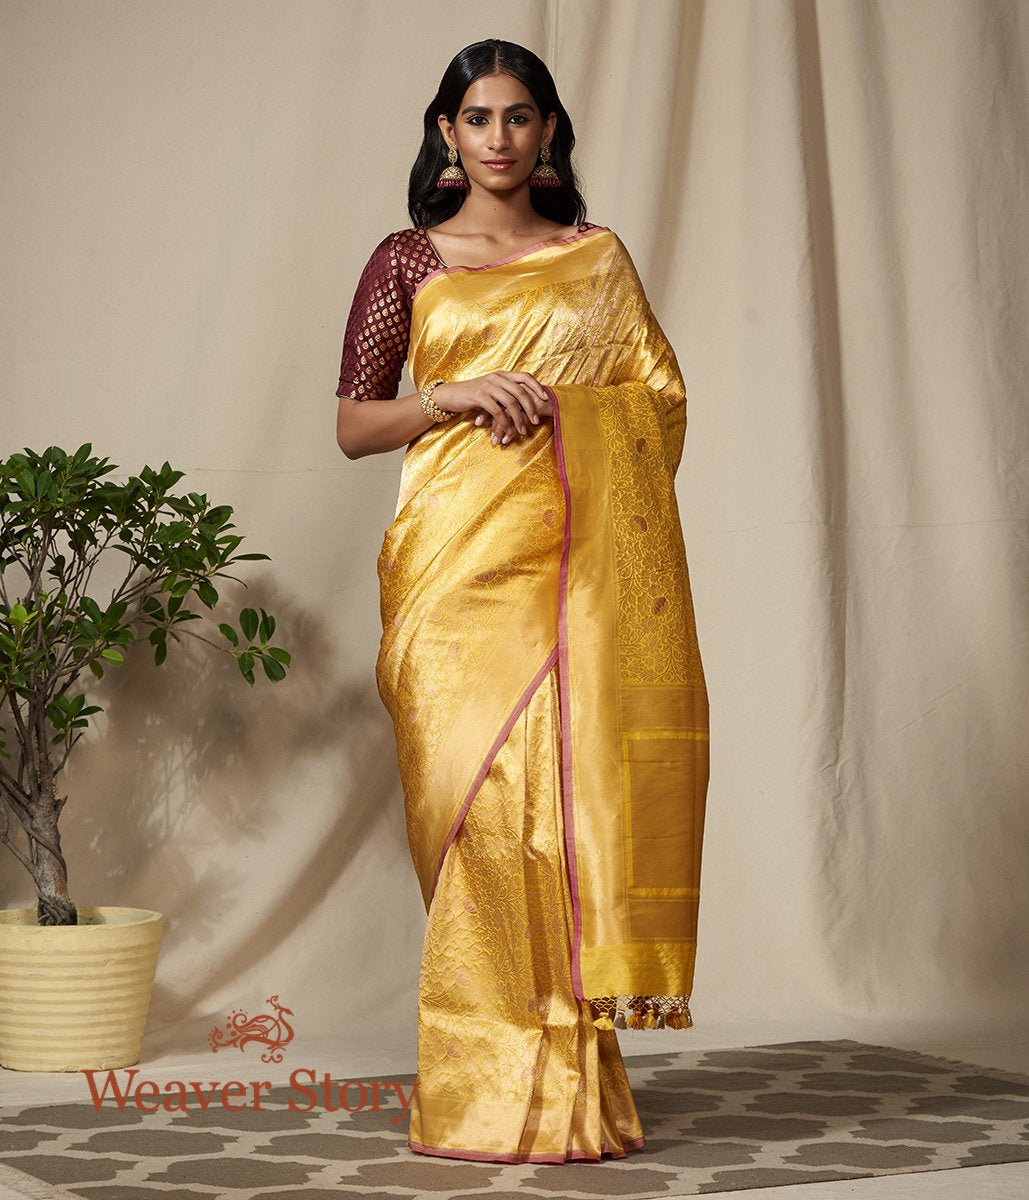 Handwoven Yellow Kimkhab Banarasi Saree with Peach Meenakari